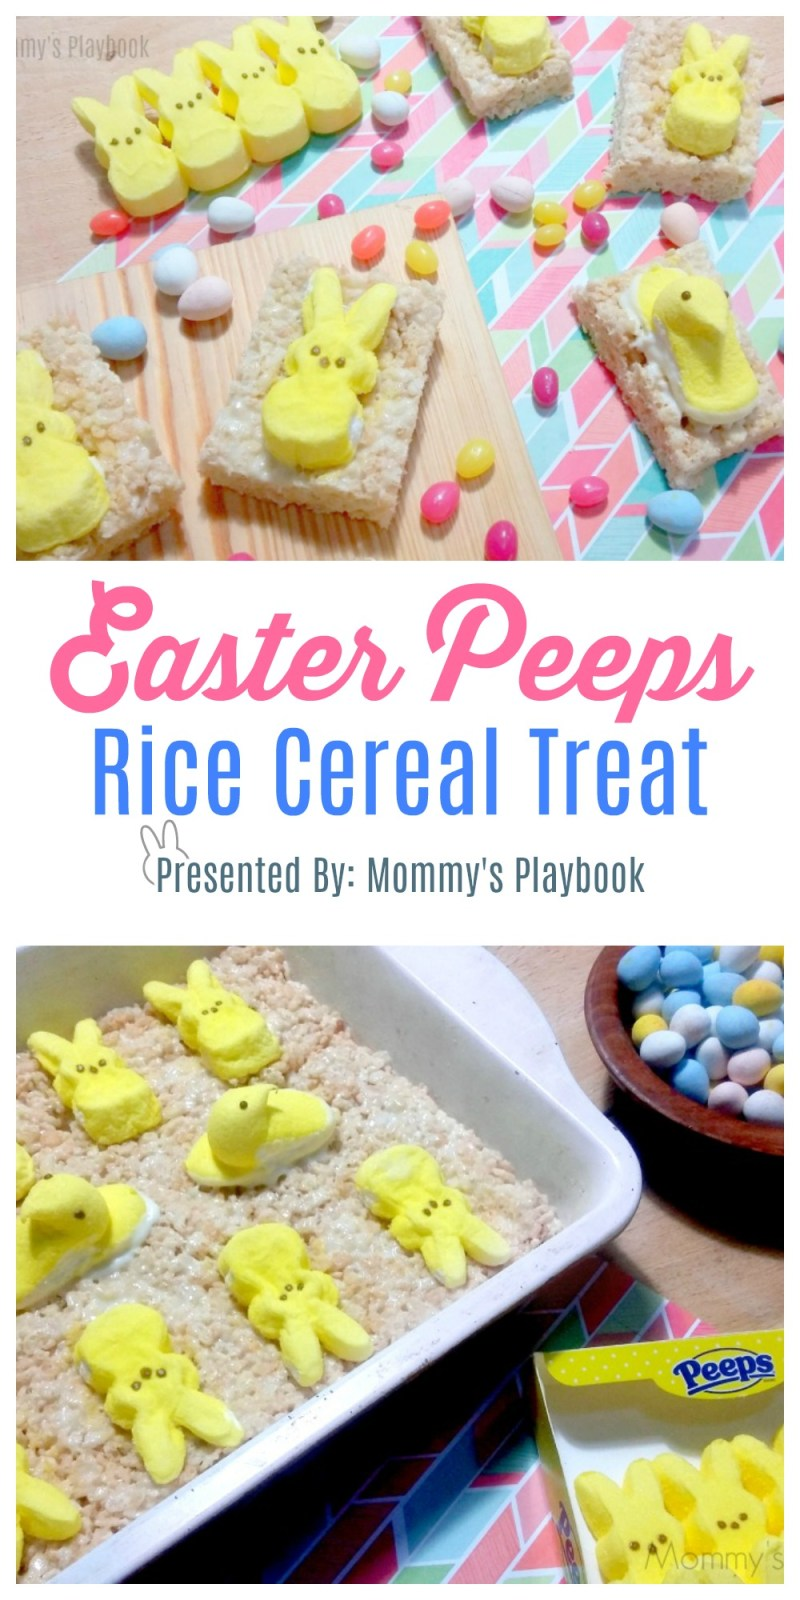 Rice Cereal Treat with Peeps! #Easter #EasterTreats #EasterSweetsandTreats